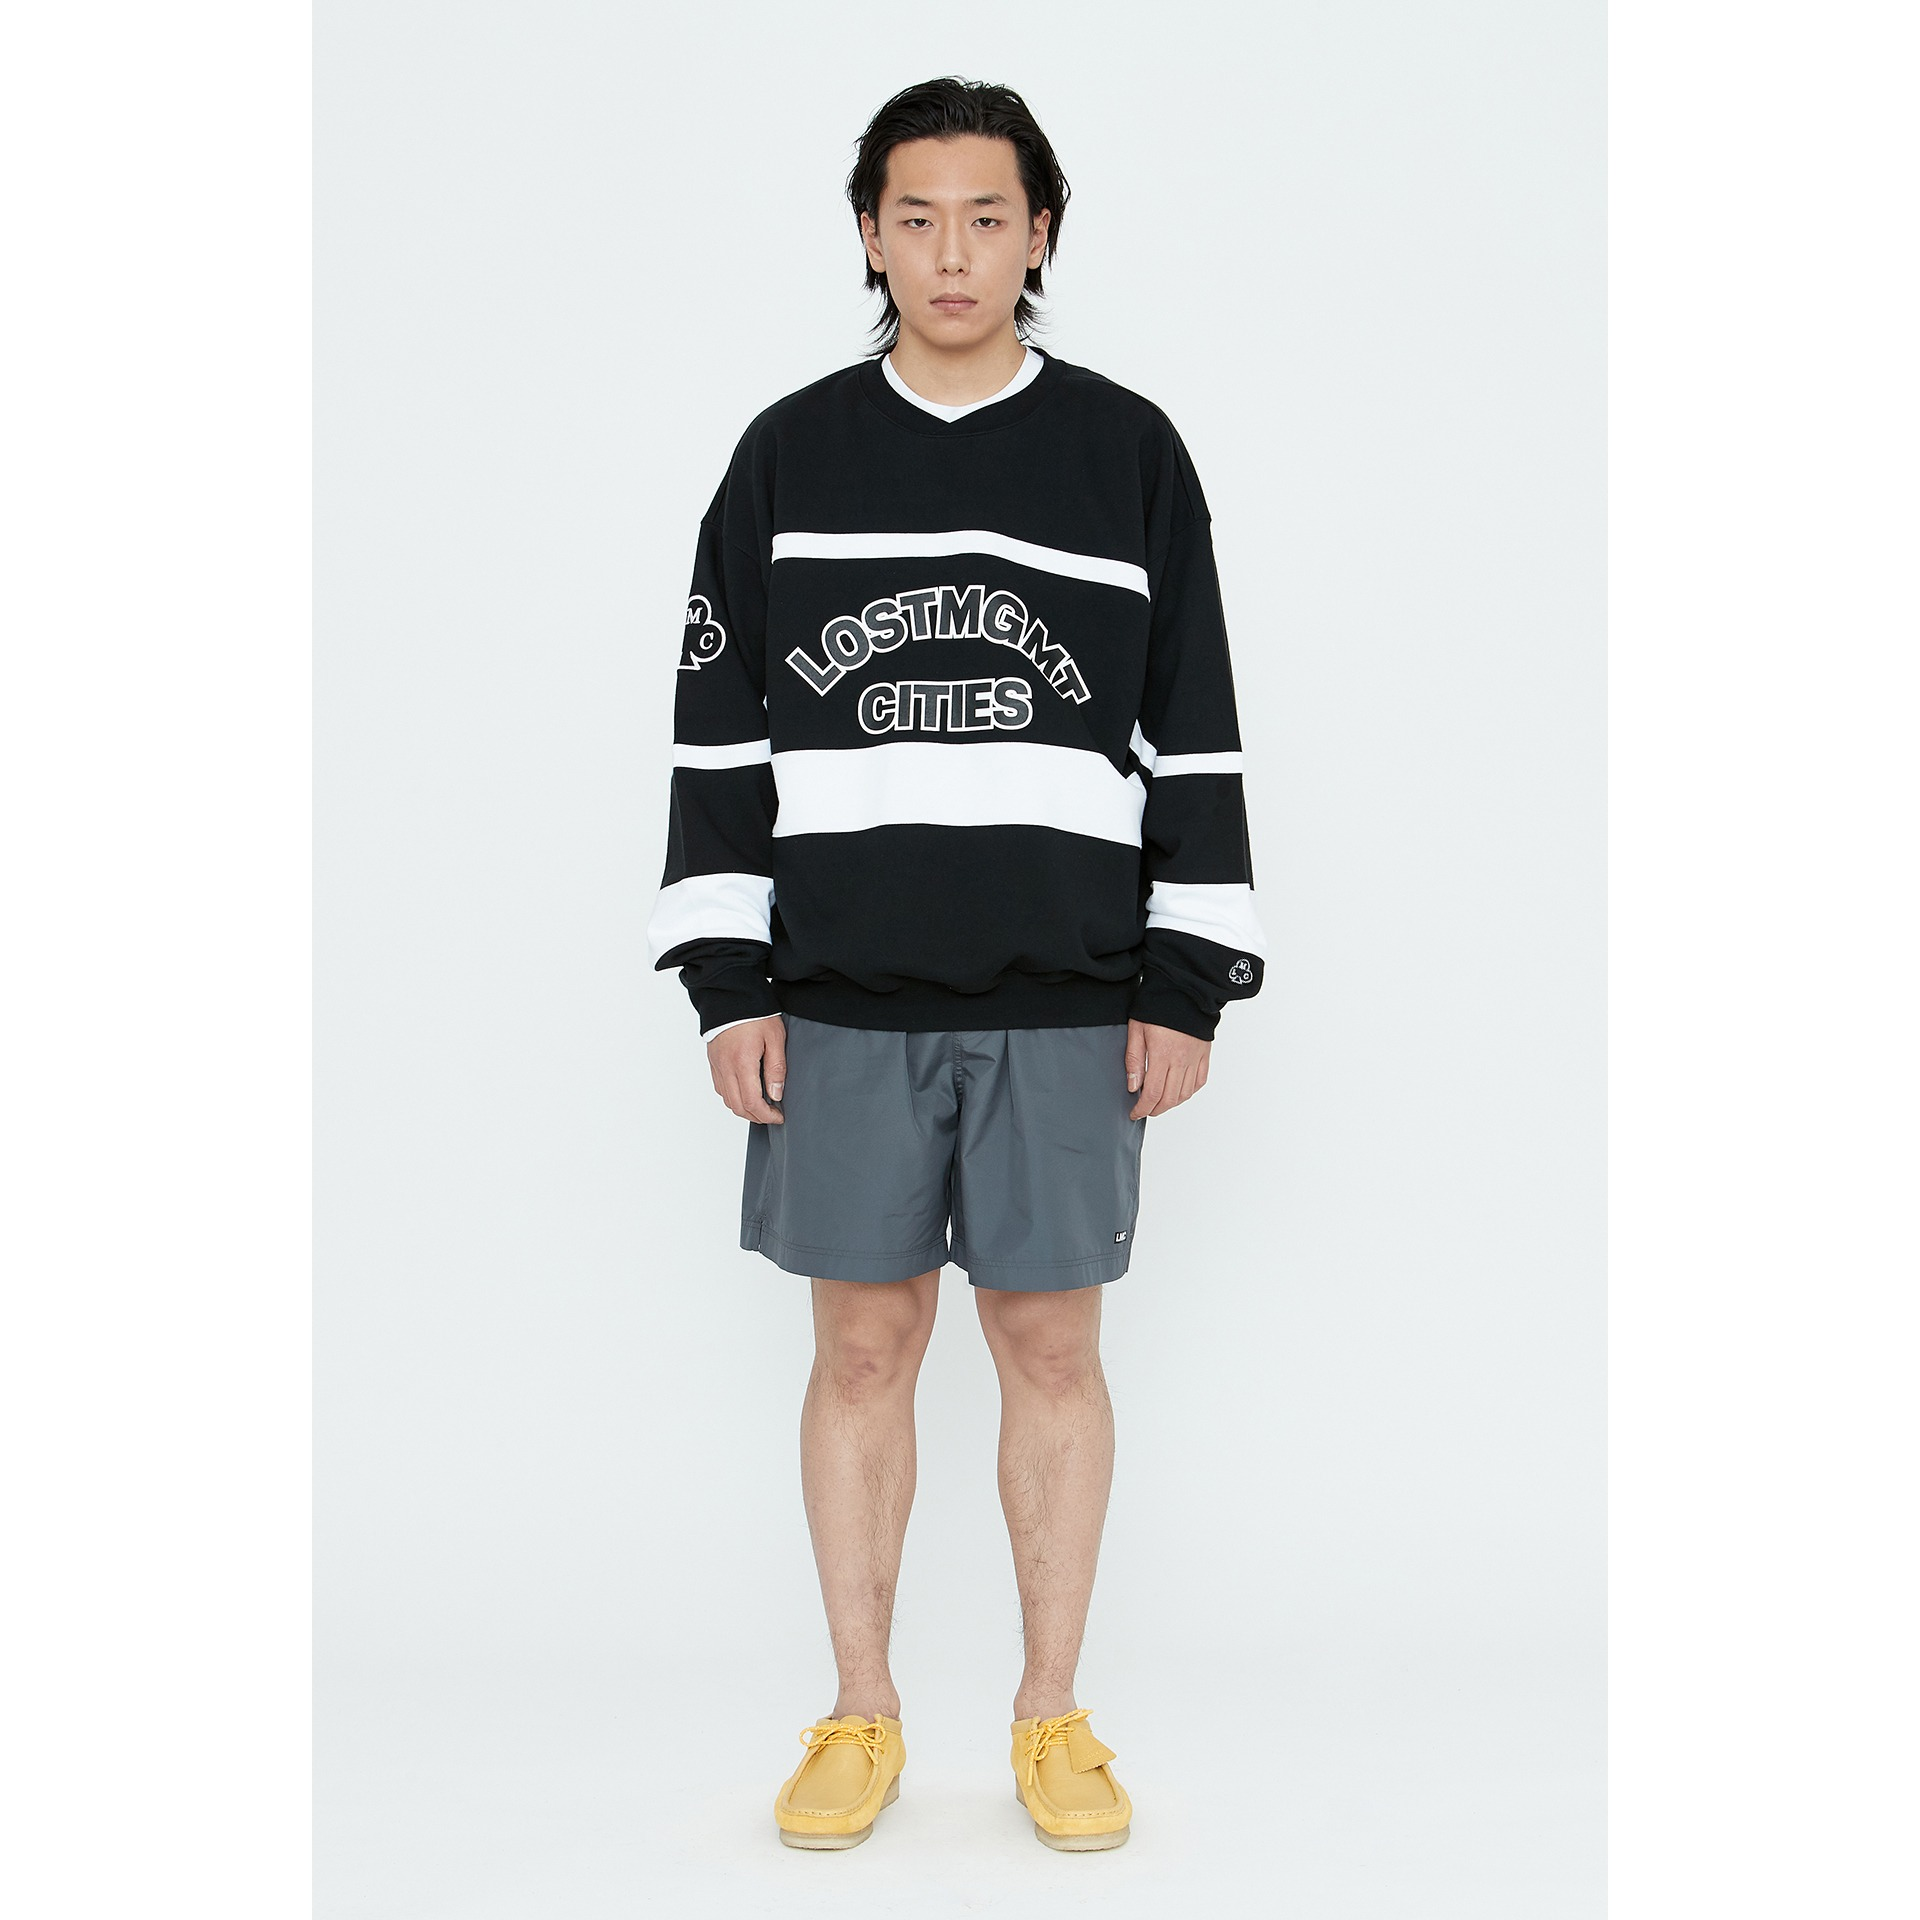 LMC HOCKEY OVERSIZED SWEATSHIRT black